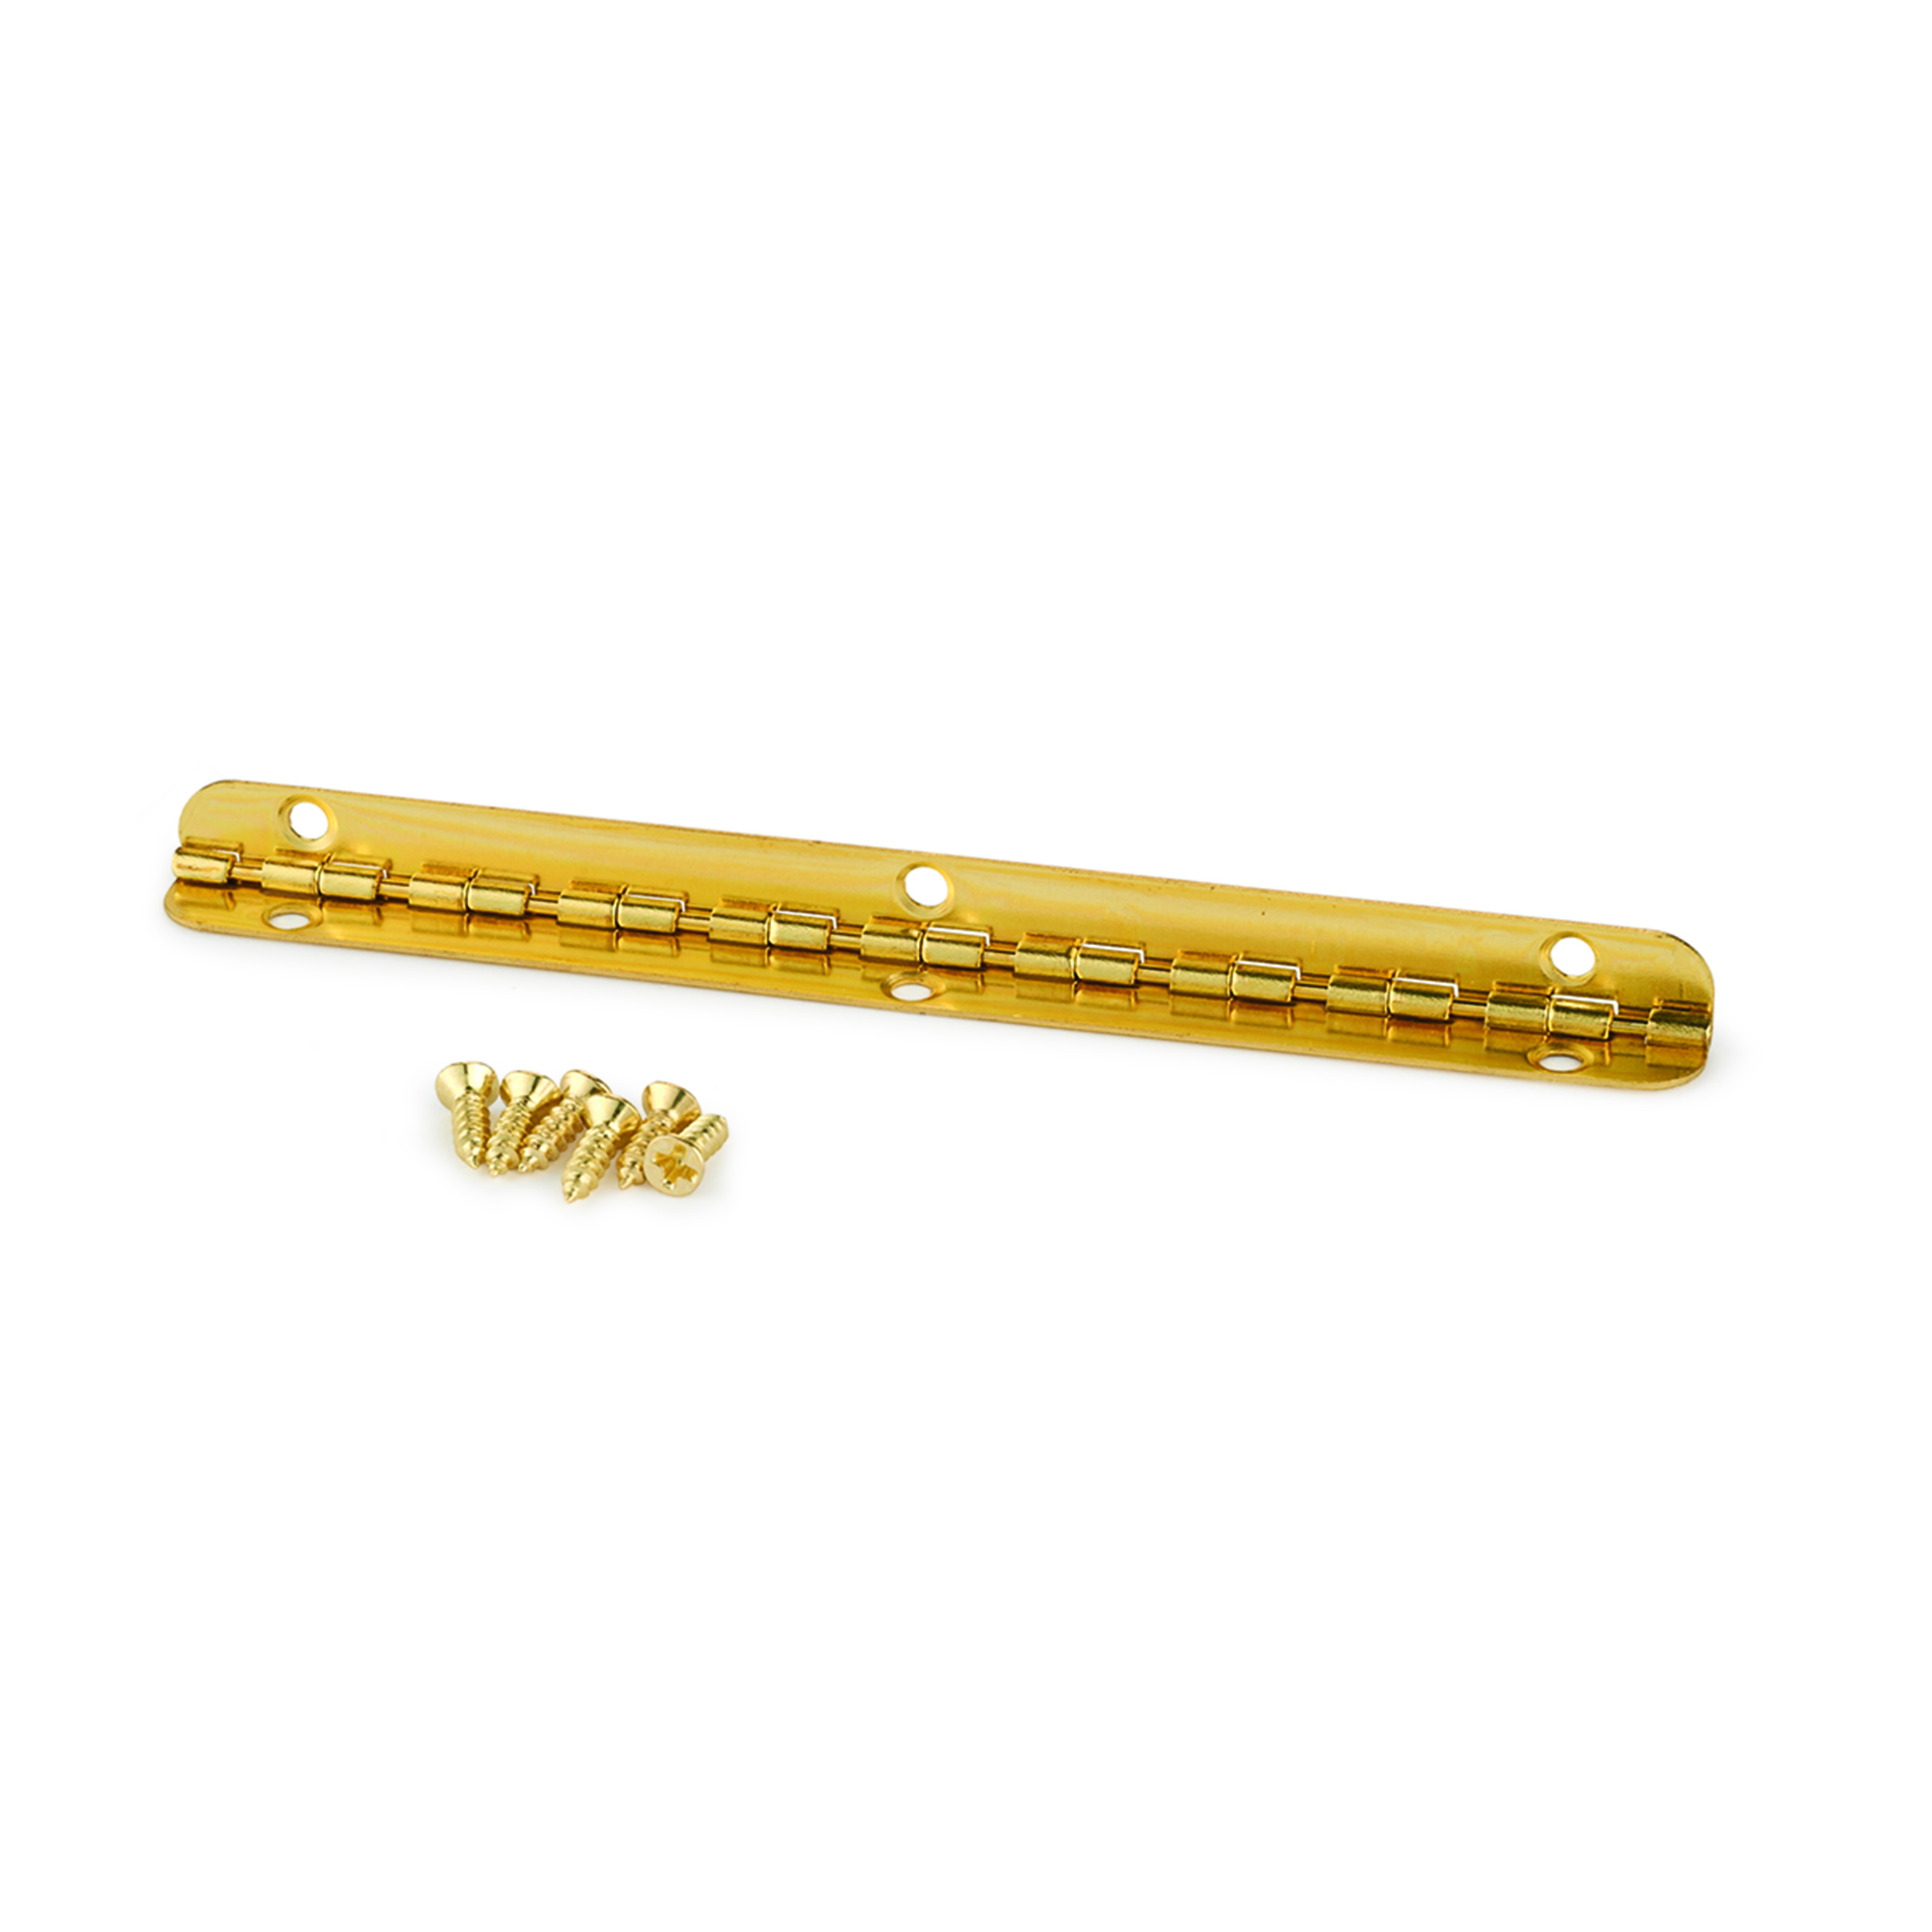 Small Piano Stop Hinge Brass Plated 96mm x 7mm